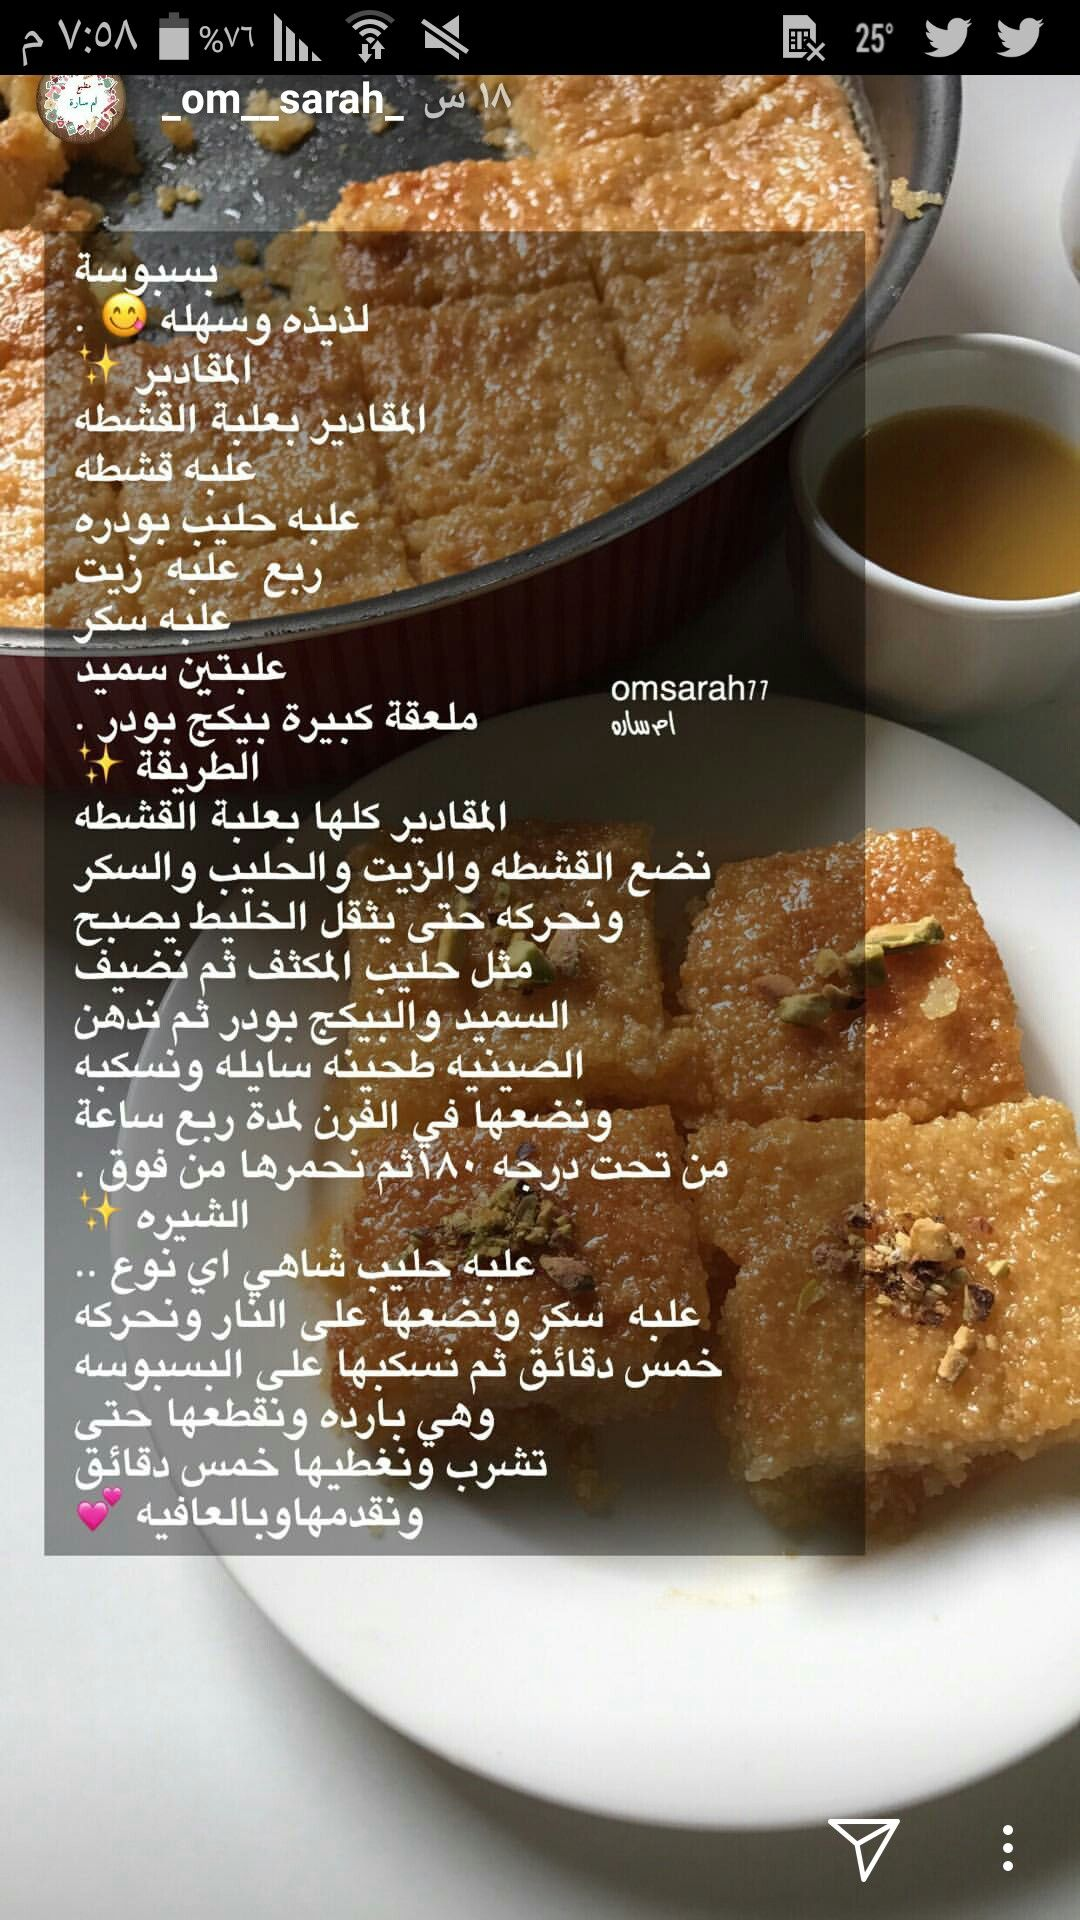 Pin By Rula Shahin On Food Dessert Video From All Over The World Dessert Recipes Yummy Food Dessert Sweets Recipes